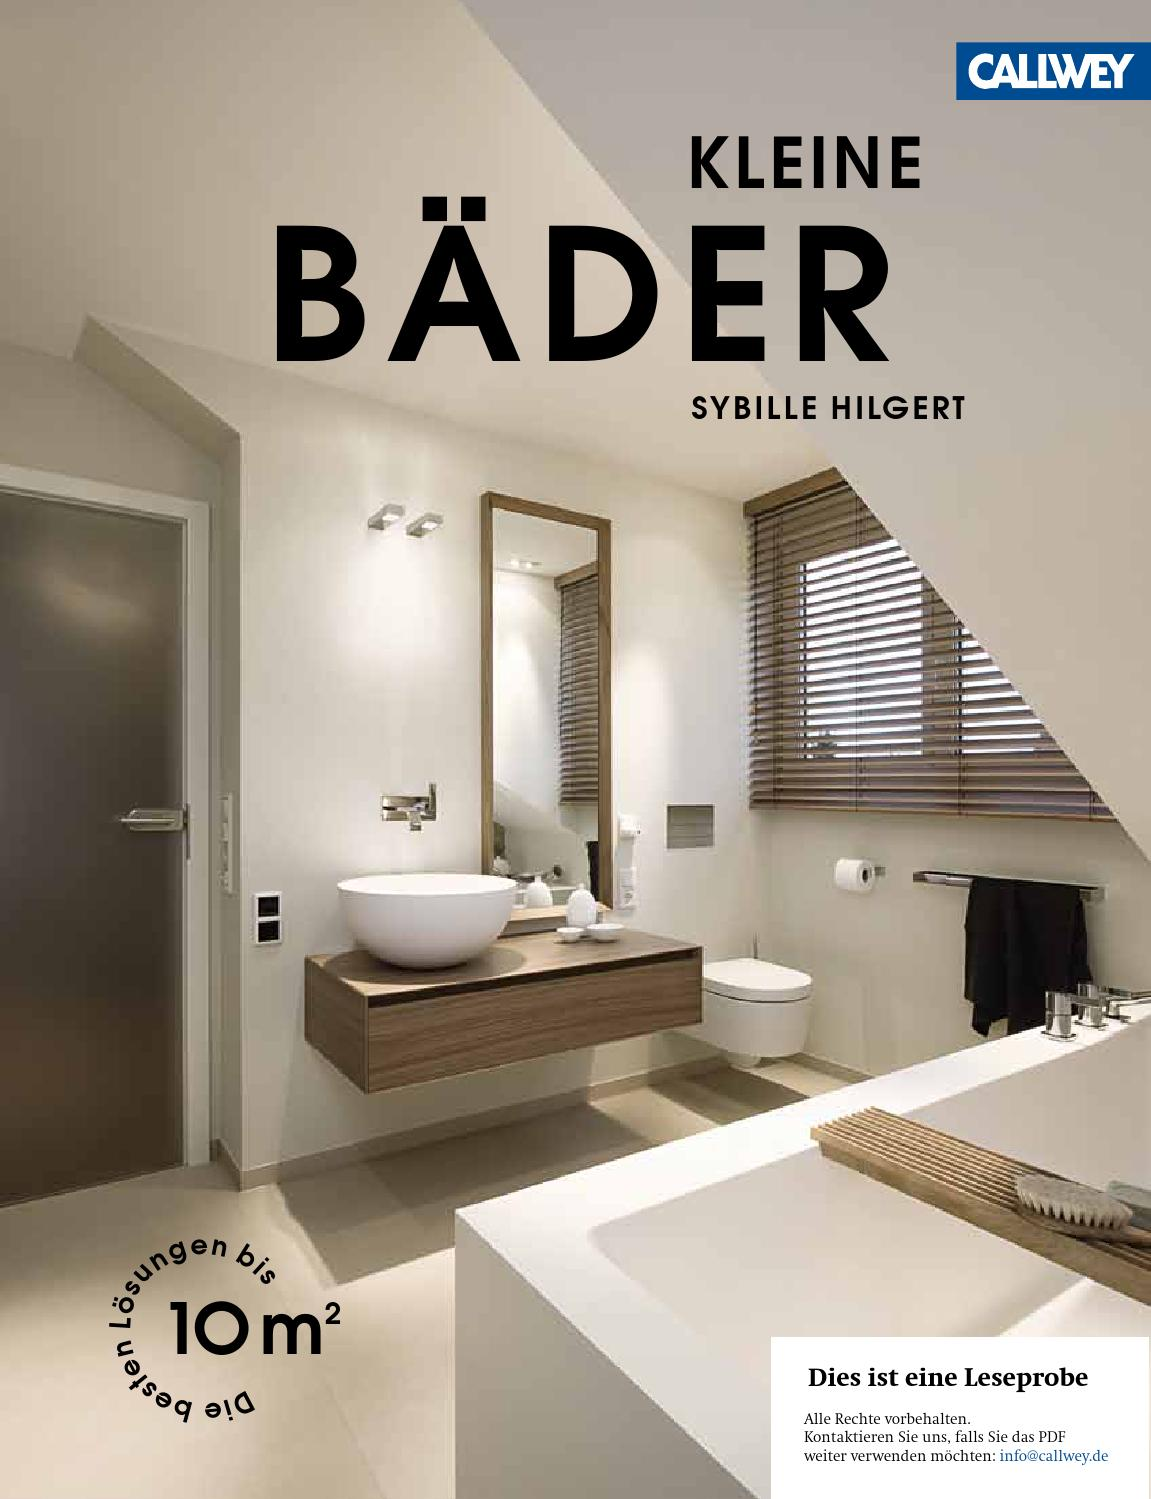 hilgert kleine baeder issuu by georg d w callwey gmbh co kg issuu. Black Bedroom Furniture Sets. Home Design Ideas